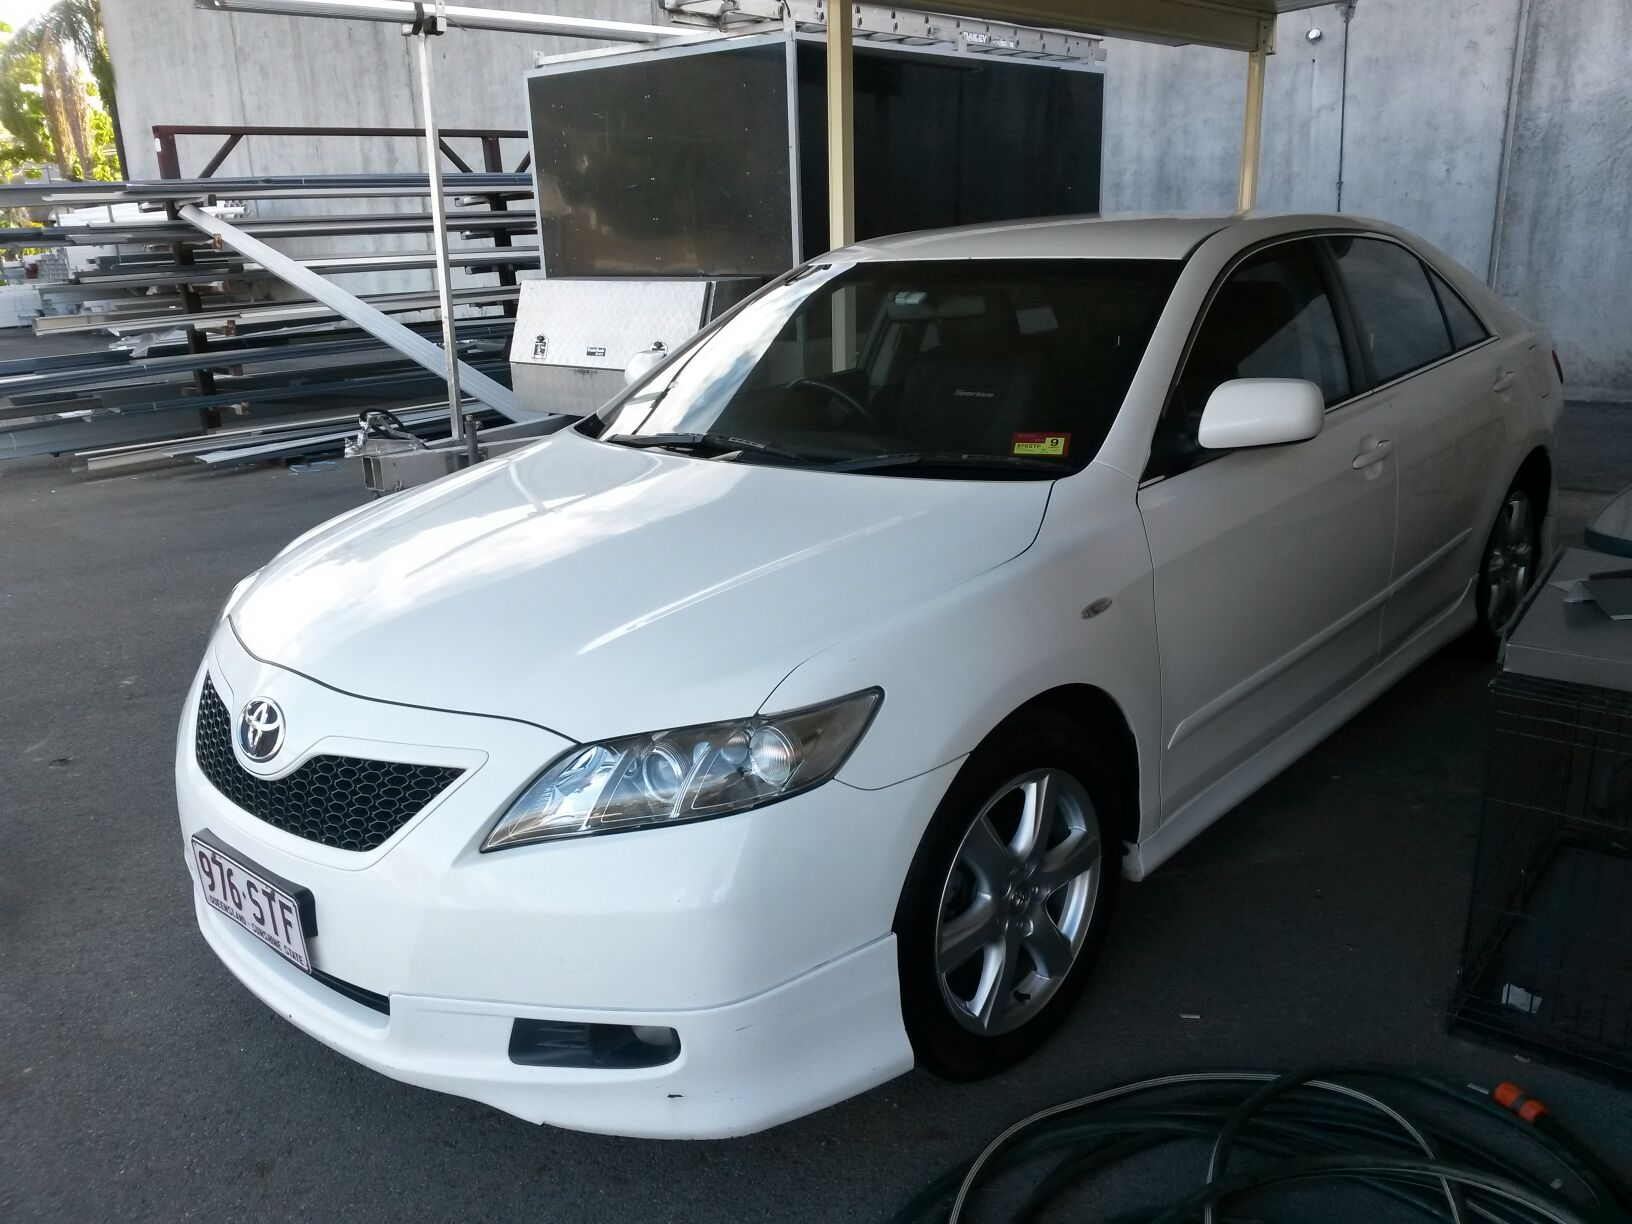 2008 toyota camry sportivo acv40r for sale qld gold coast. Black Bedroom Furniture Sets. Home Design Ideas